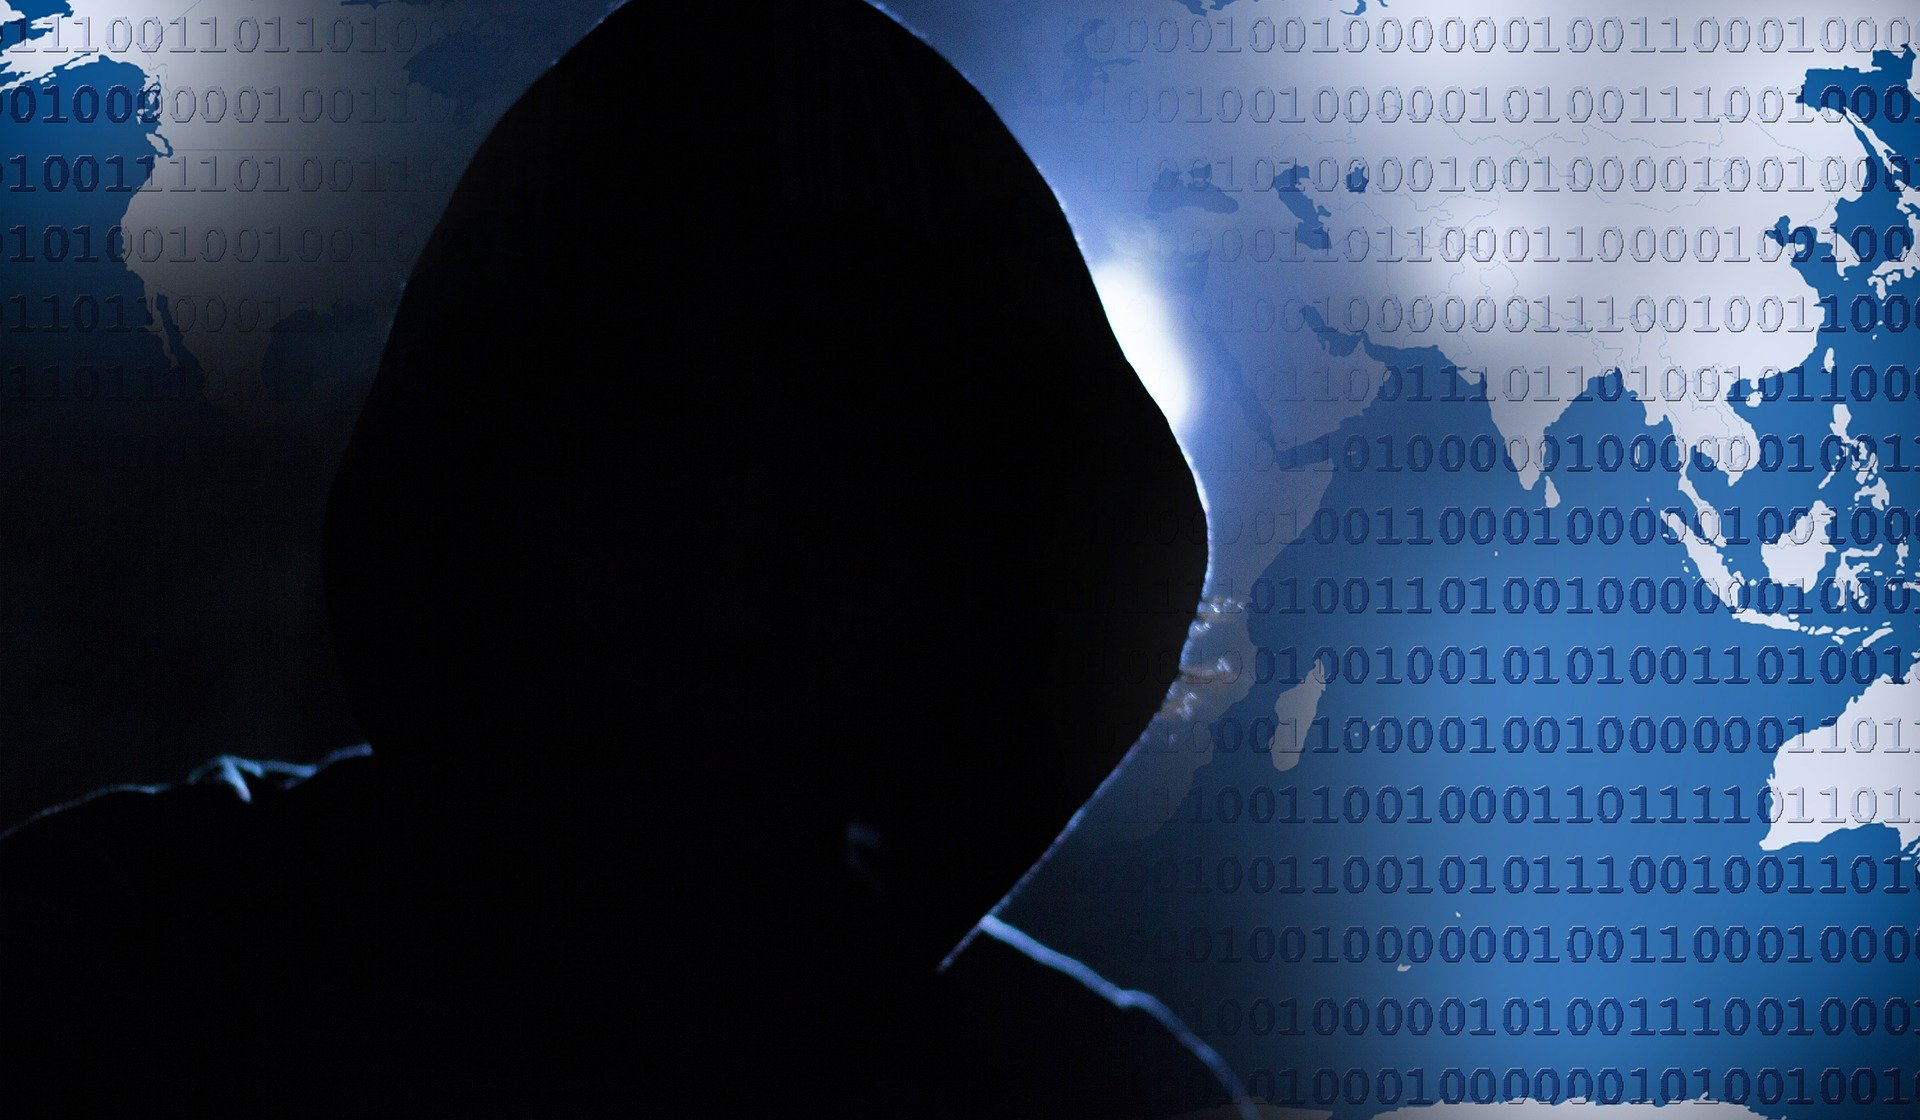 cyber crime cybersecurity in radiology, healthcare and medicine